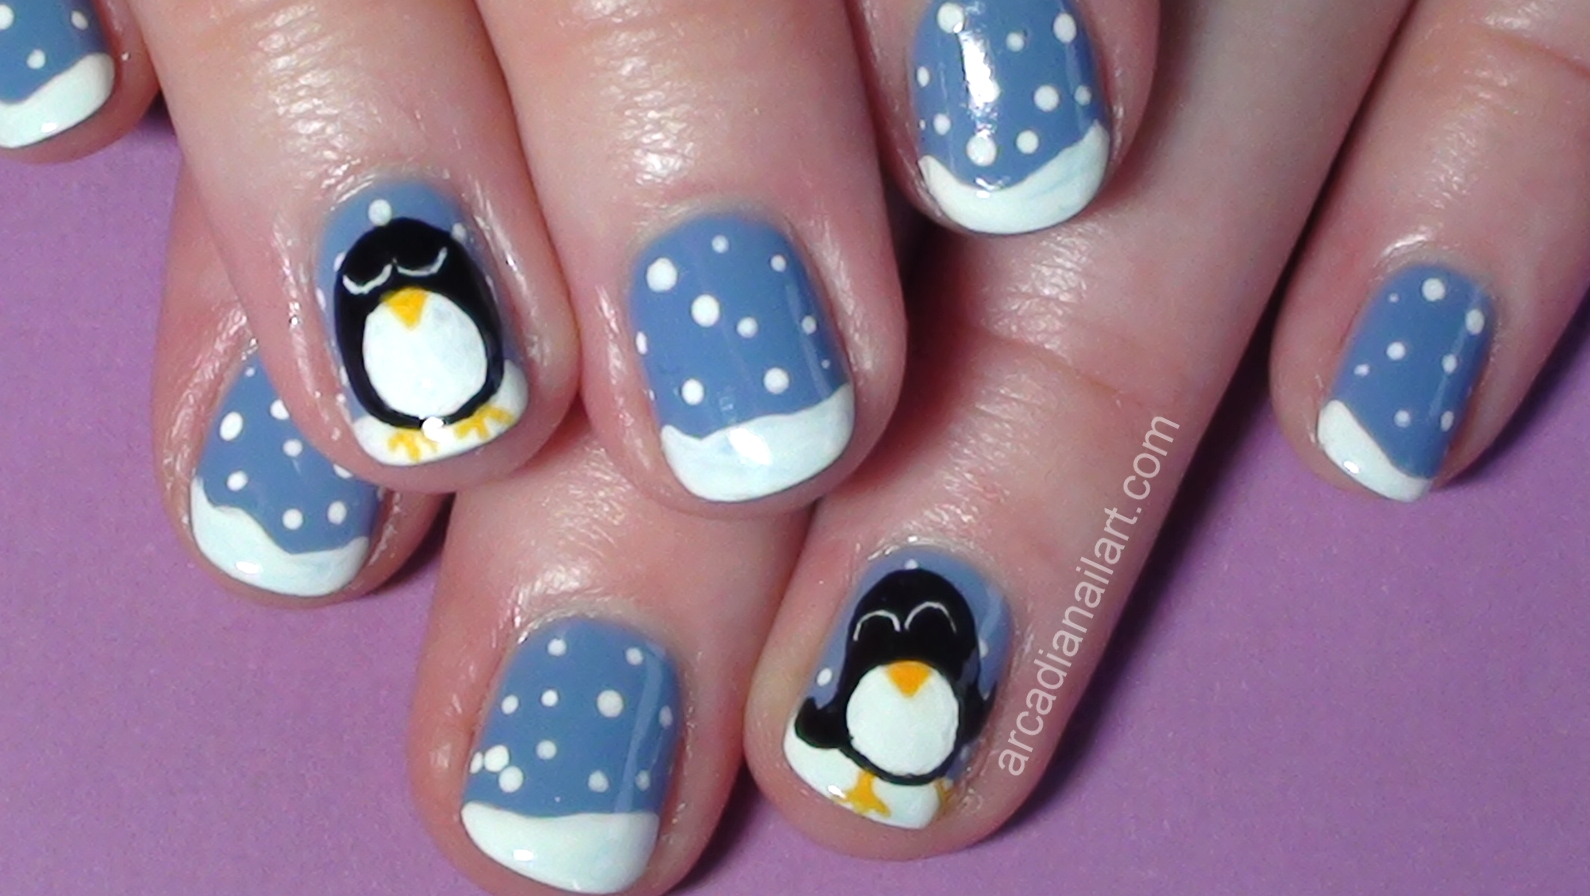 ArcadiaNailArt: December 2012